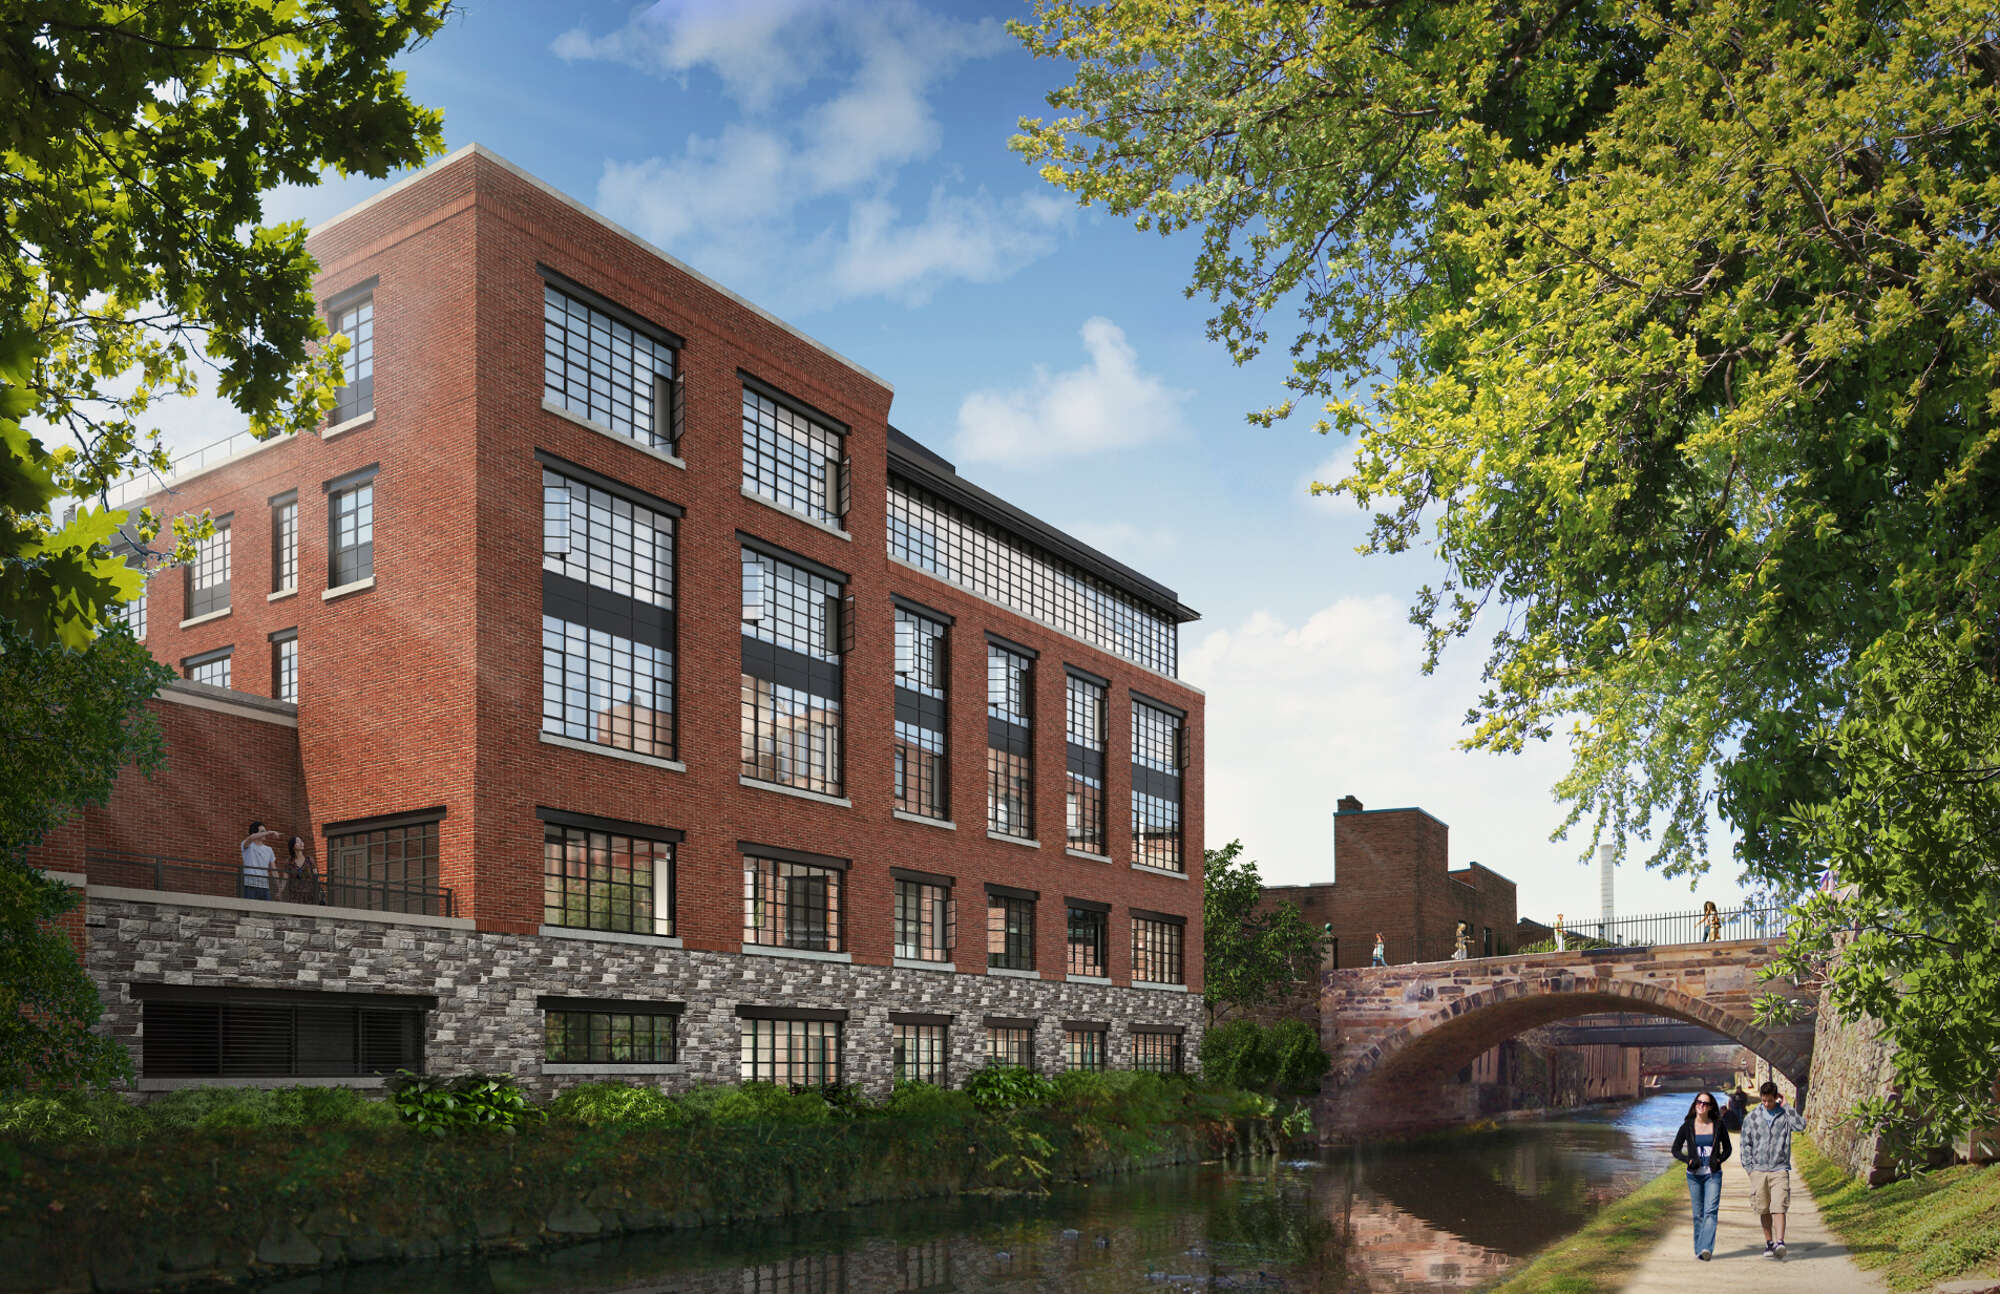 A rendering of a brick building on the river with people walking on the other side.